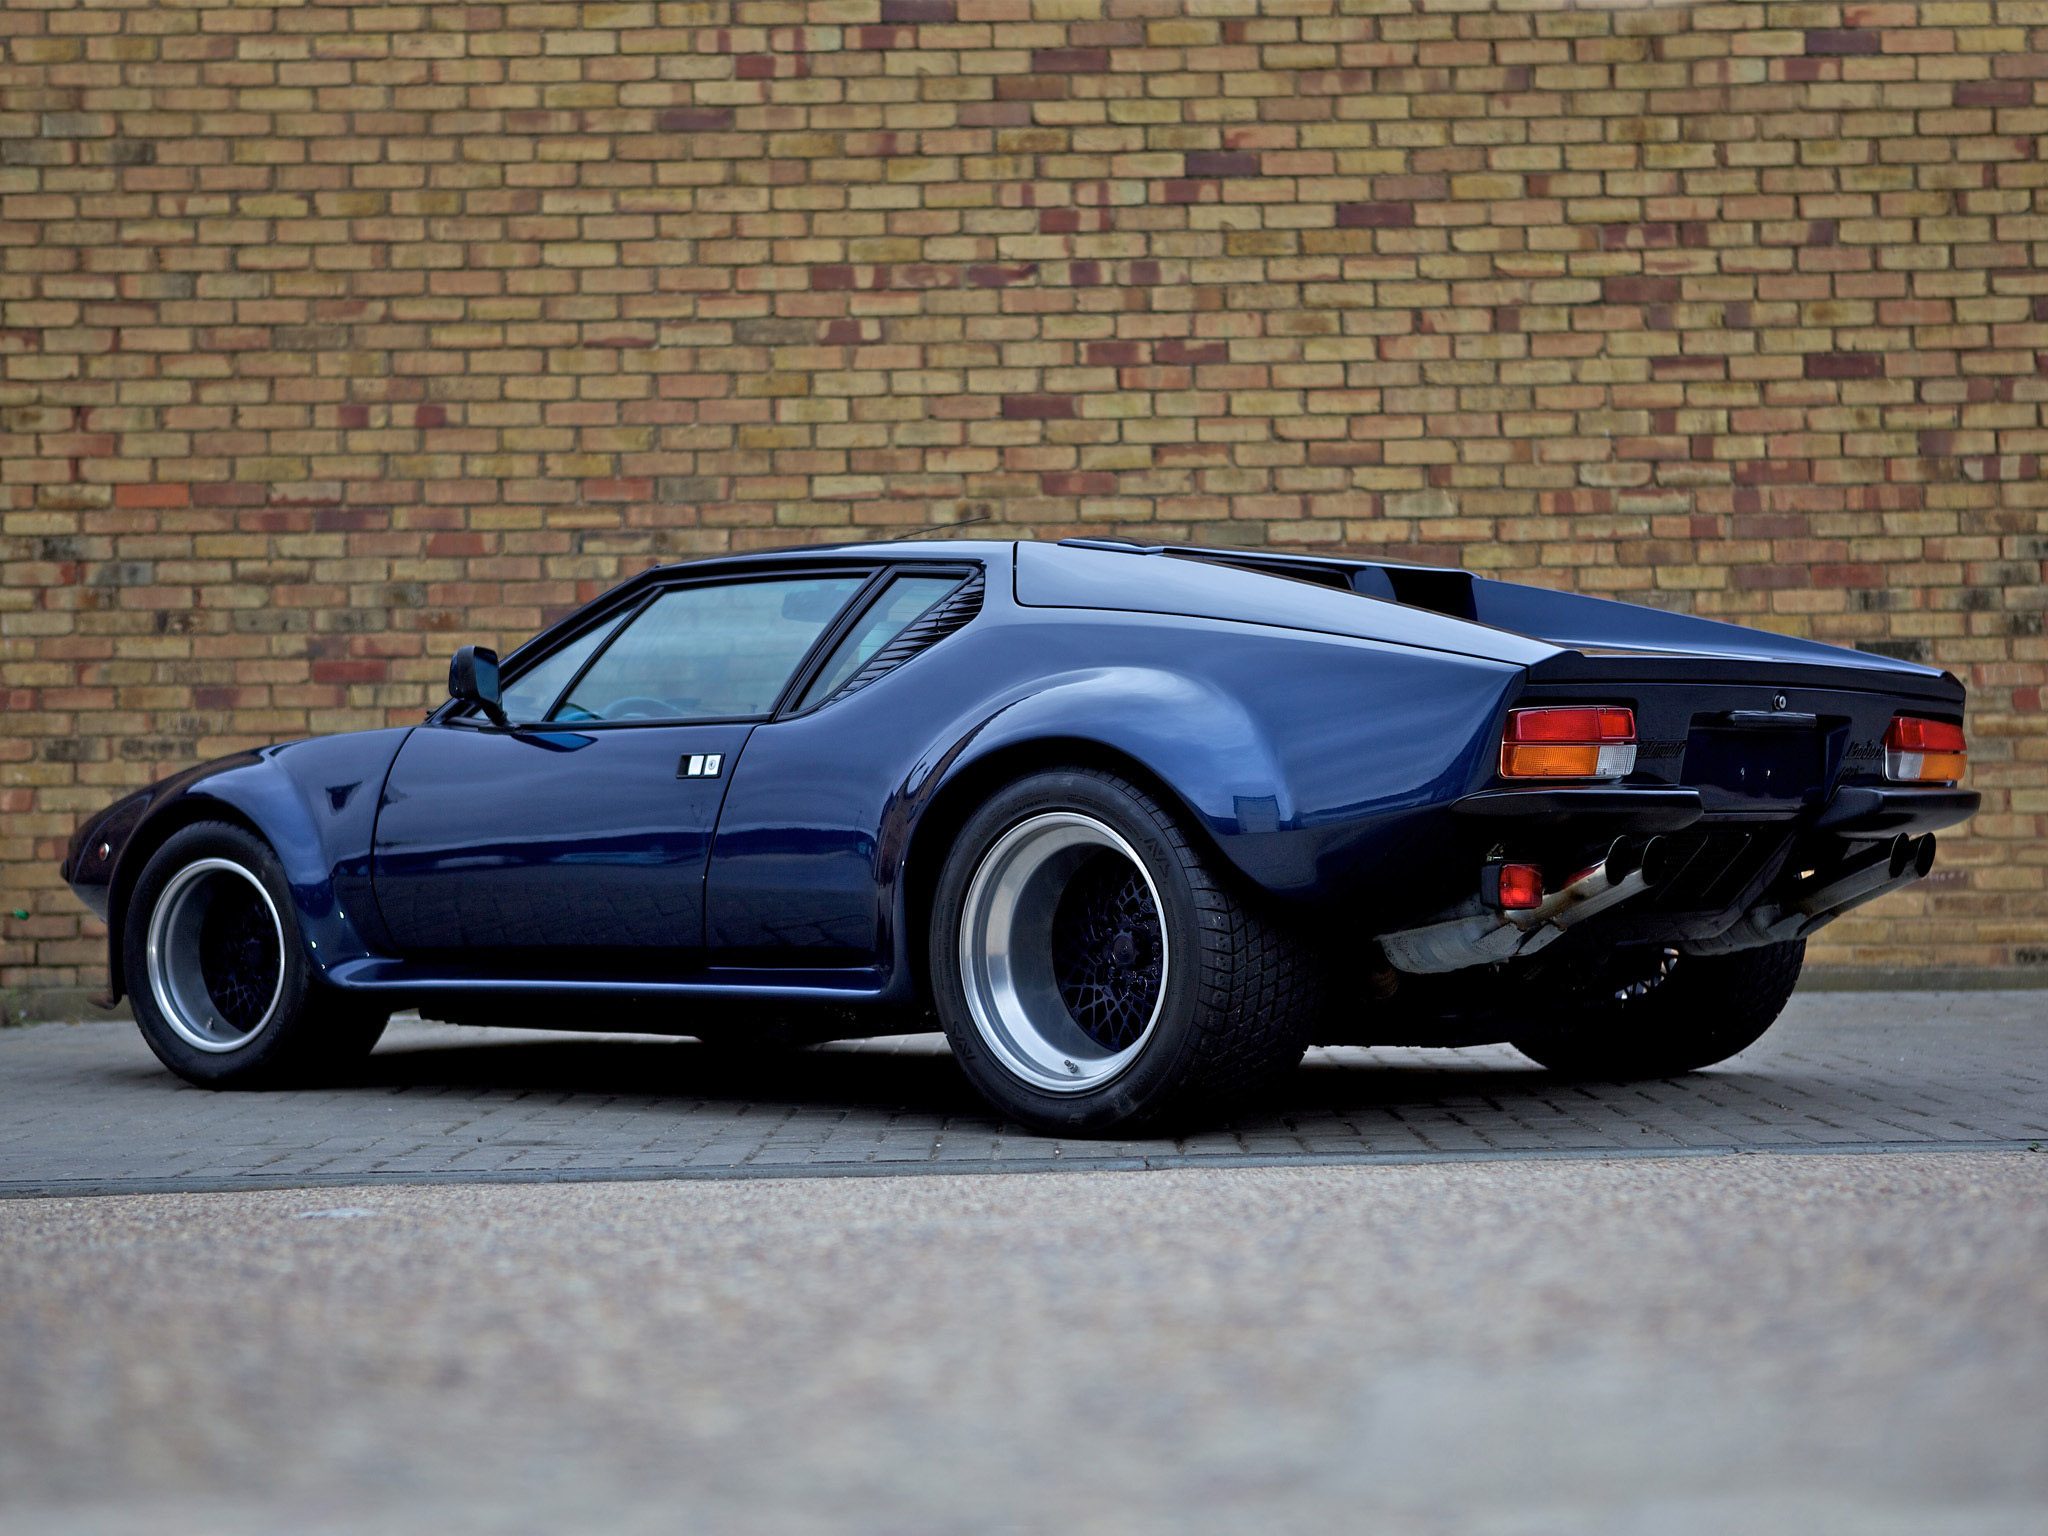 de tomaso pantera 1972 1979 de tomaso pantera 1972 1979 photo 03 car in pictures car photo. Black Bedroom Furniture Sets. Home Design Ideas